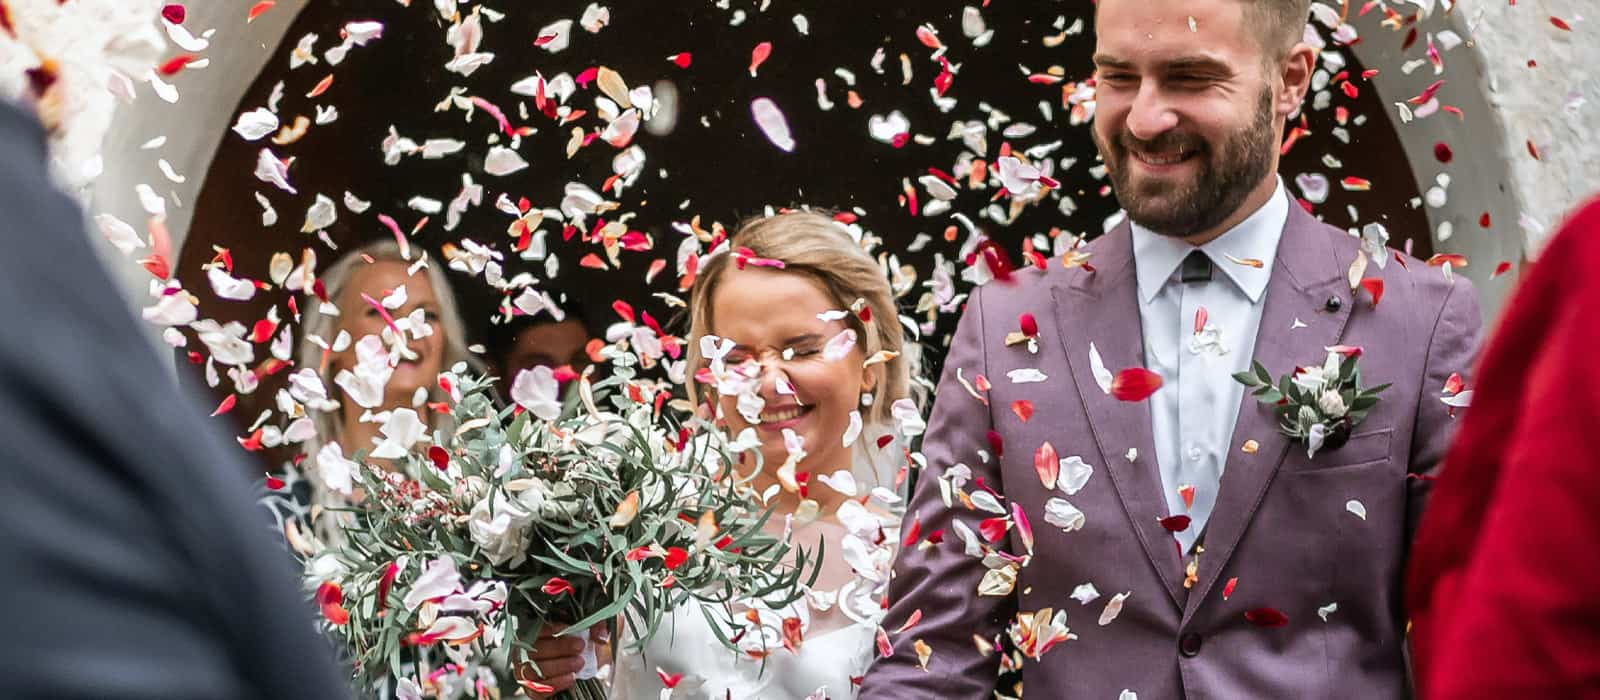 Confetti time in a wedding in Spain